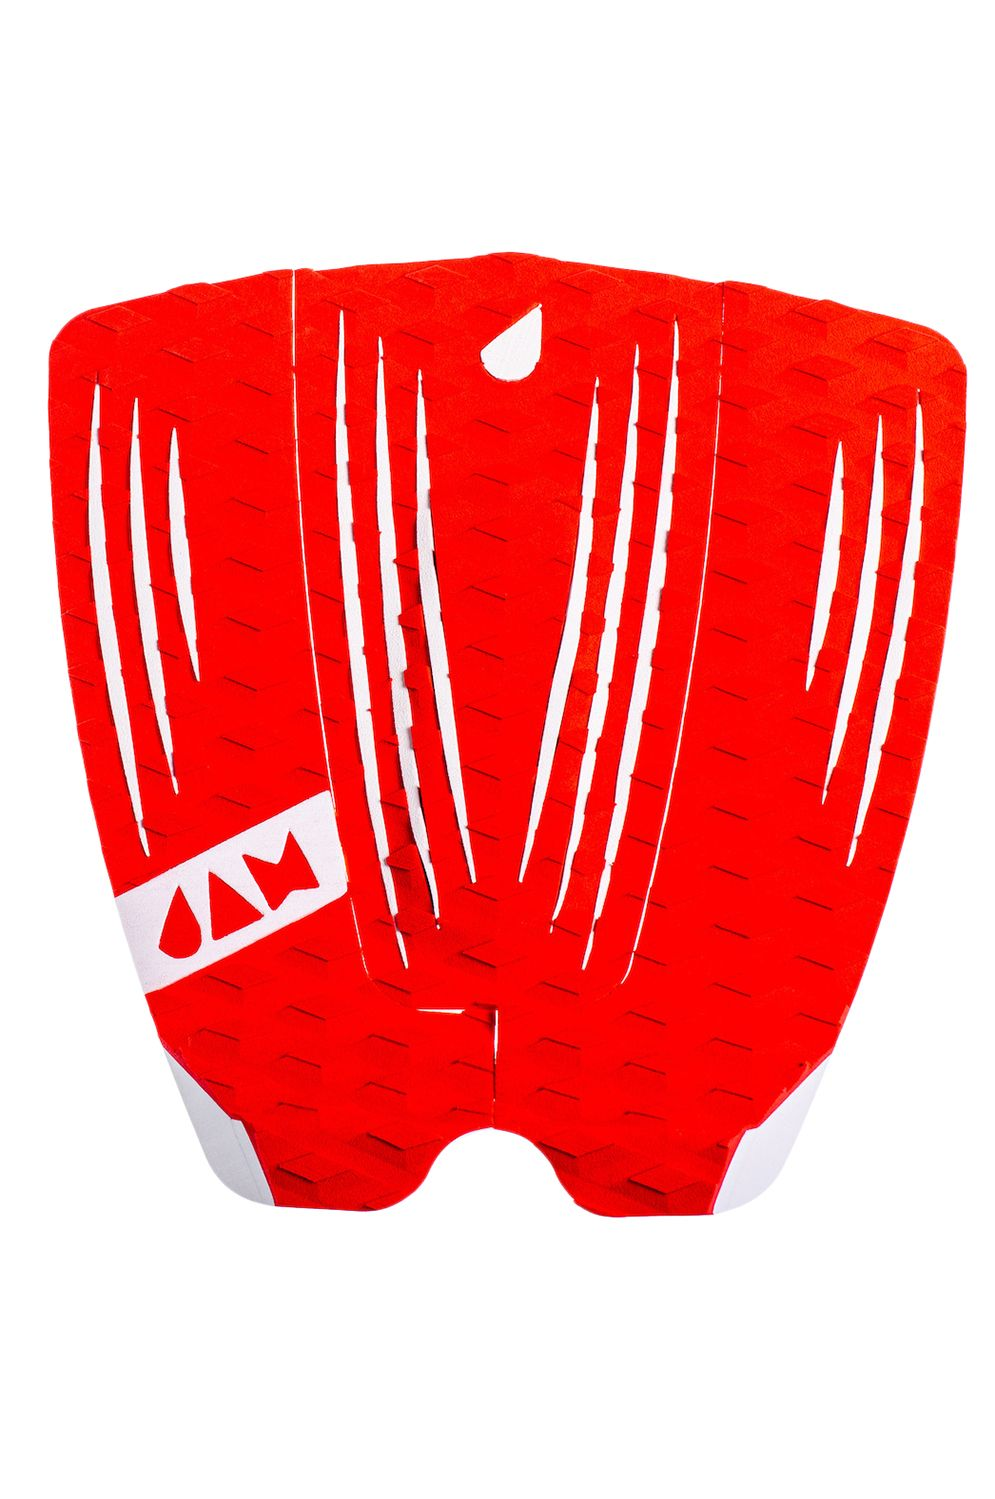 Jam Deck RECKLESS 3 PIECE TRACTION PAD Red/White Stripes